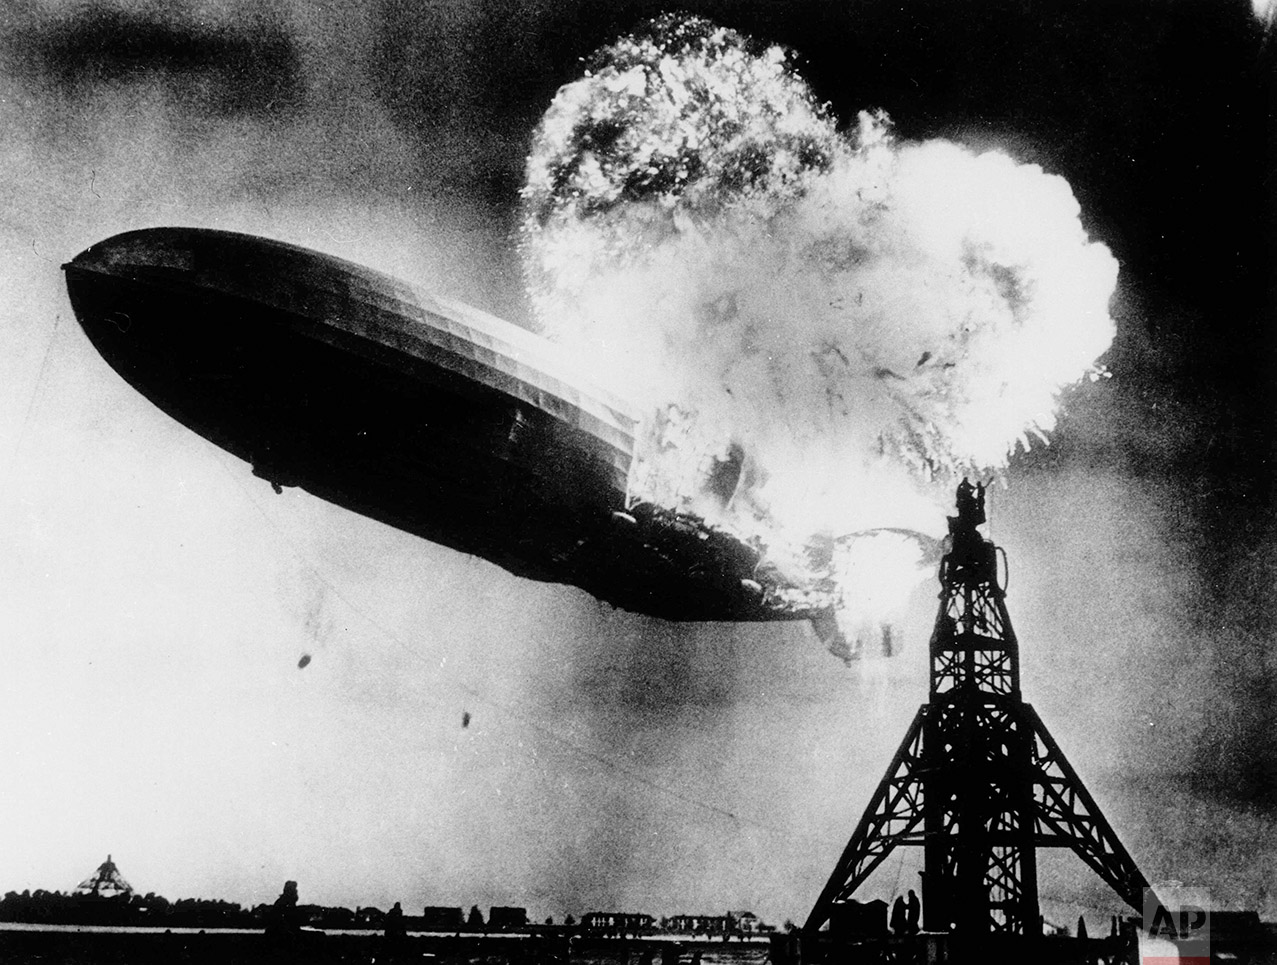 """This May 6, 1937 photo, provided by the Philadelphia Public Ledger, was taken at almost the split second that the Hindenburg exploded over the Lakehurst Naval Air Station in Lakehurst, N.J. Only one person is left of the 62 passengers and crew who survived when the Hindenburg burst into flames 80 years ago Saturday, May 6, 2017. Werner Doehner was 8 years old when he boarded the zeppelin with his parents and older siblings after their vacation to Germany in 1937. The 88-year-old now living in Parachute, Colo., tells The Associated Press that the airship pitched as it tried to land in New Jersey and that """"suddenly the air was on fire."""" (AP Photo)"""